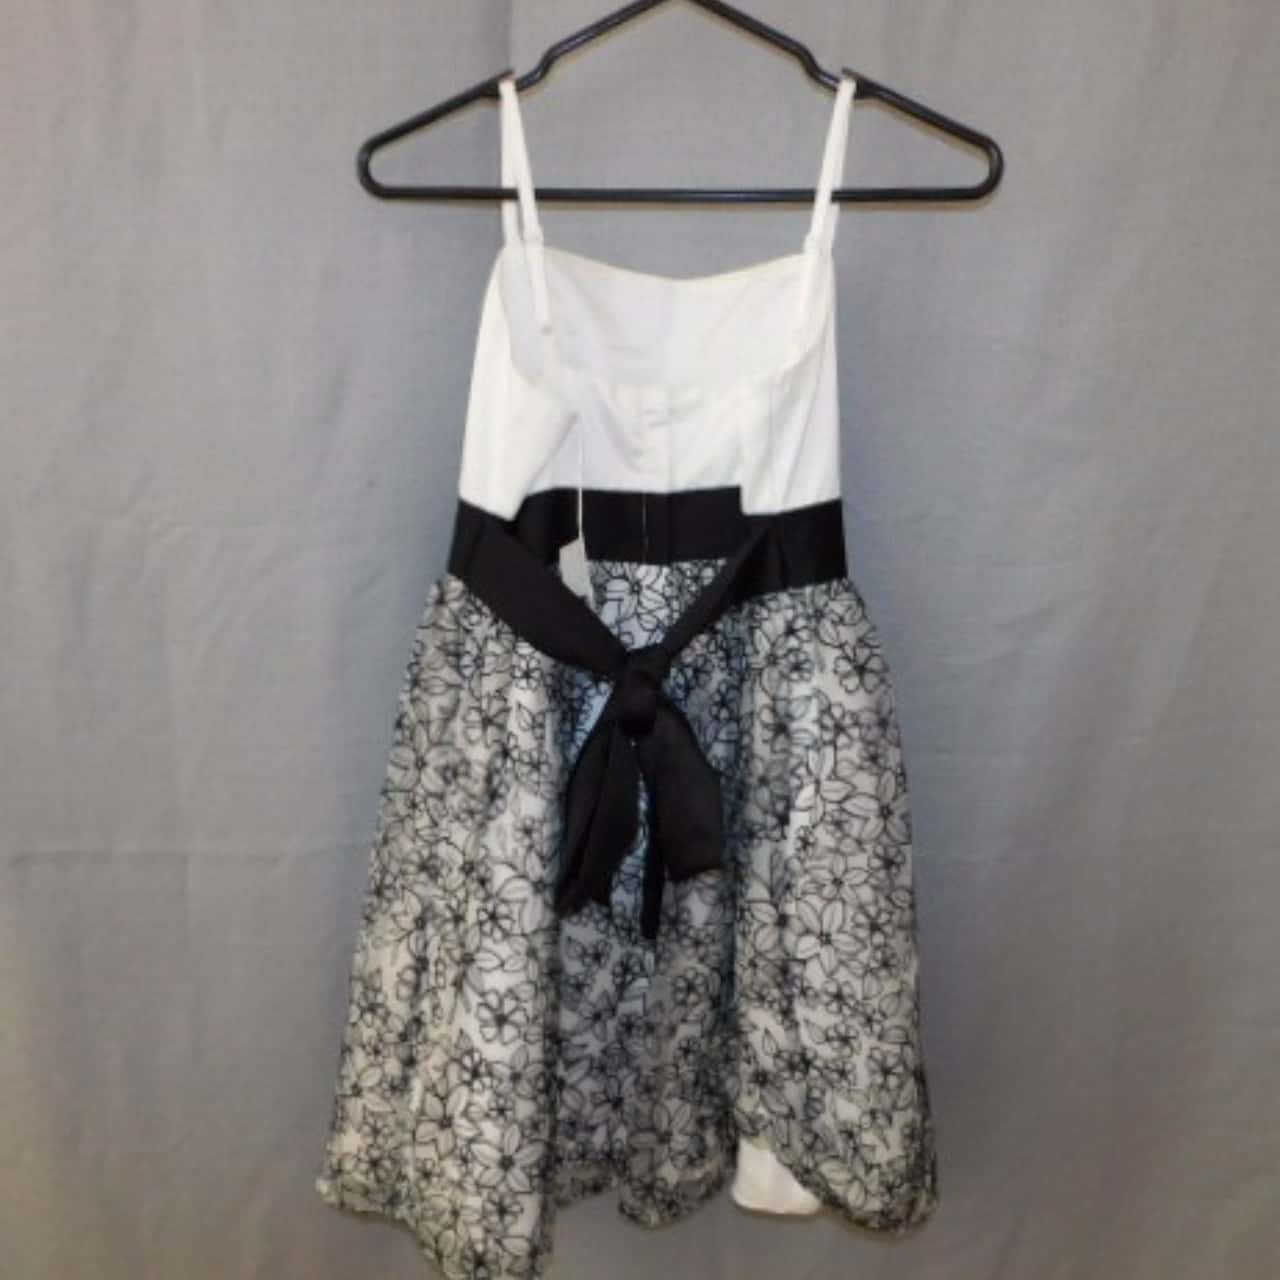 Friends By Jesse Girls Black/White Floral Formal Dress Size 14